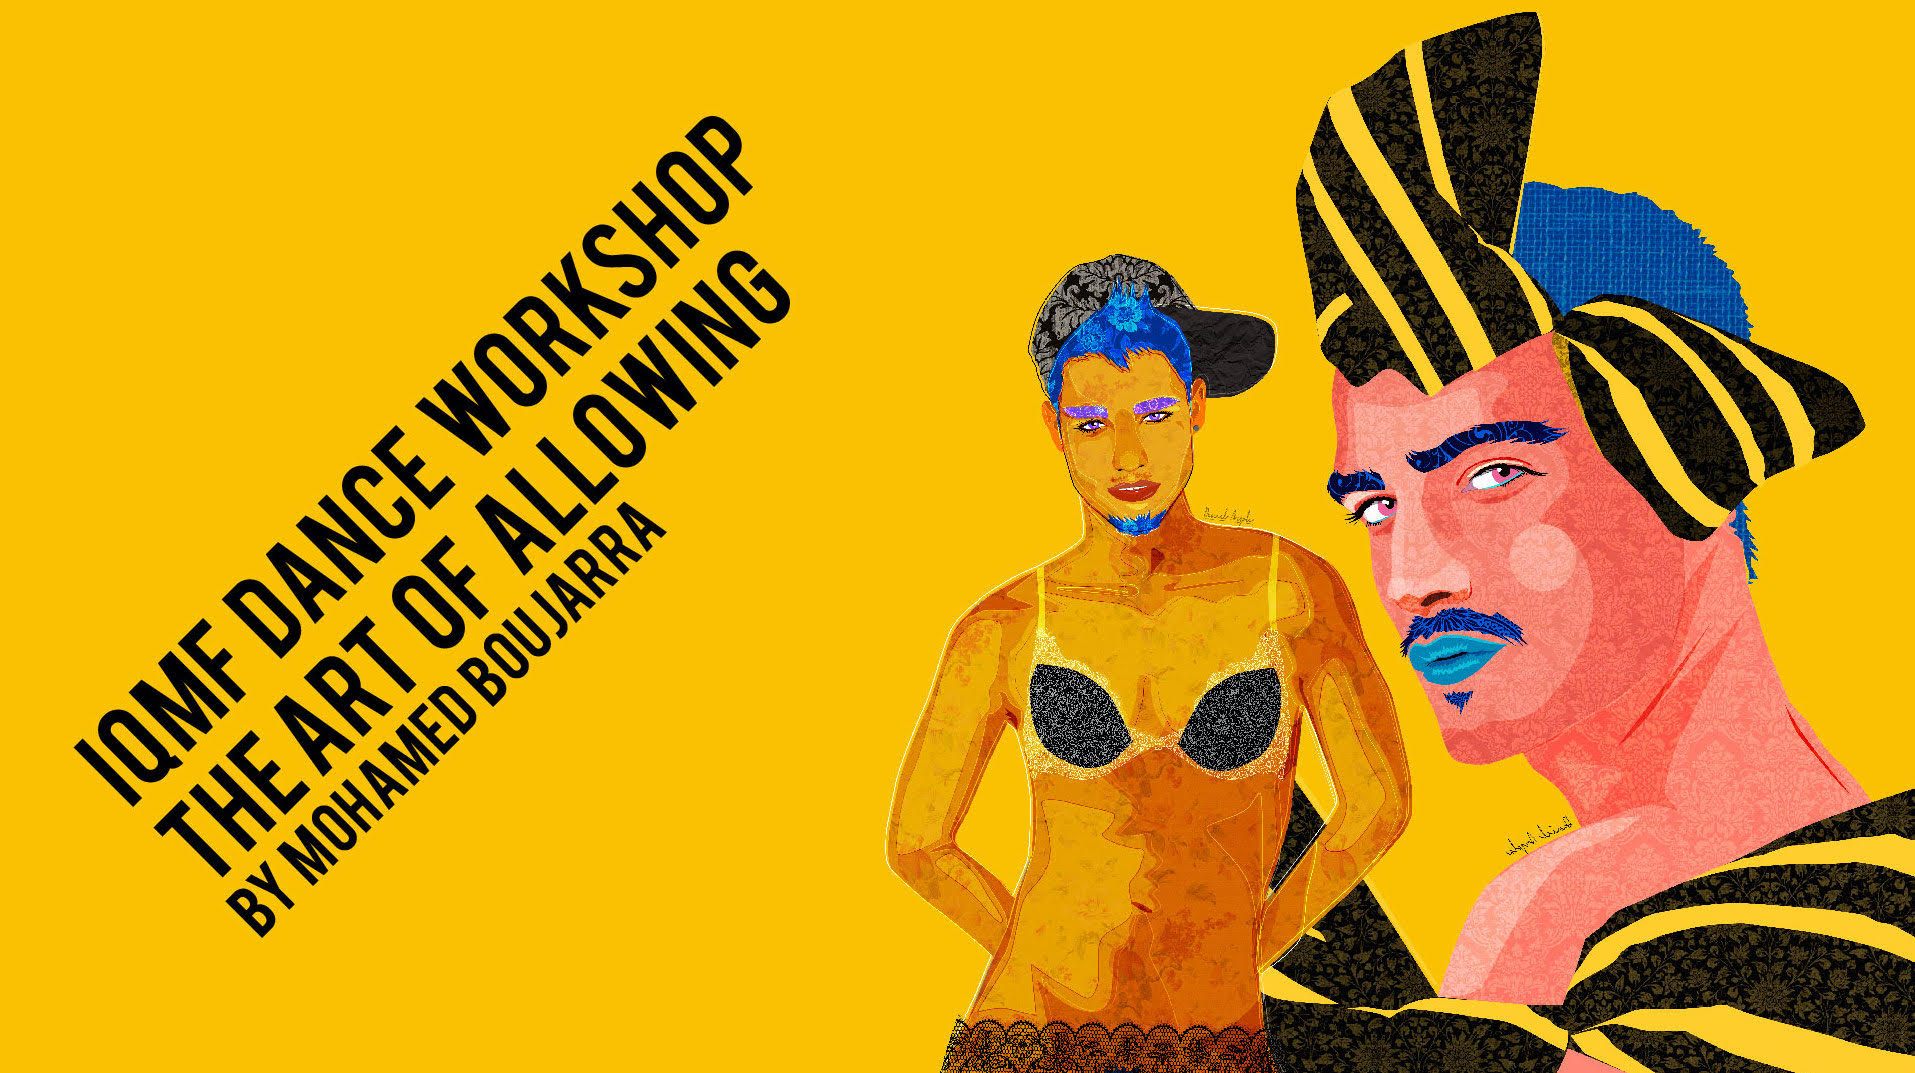 Poster IQMF Workshops: Art Of Allowing with Mohamed Boujarra